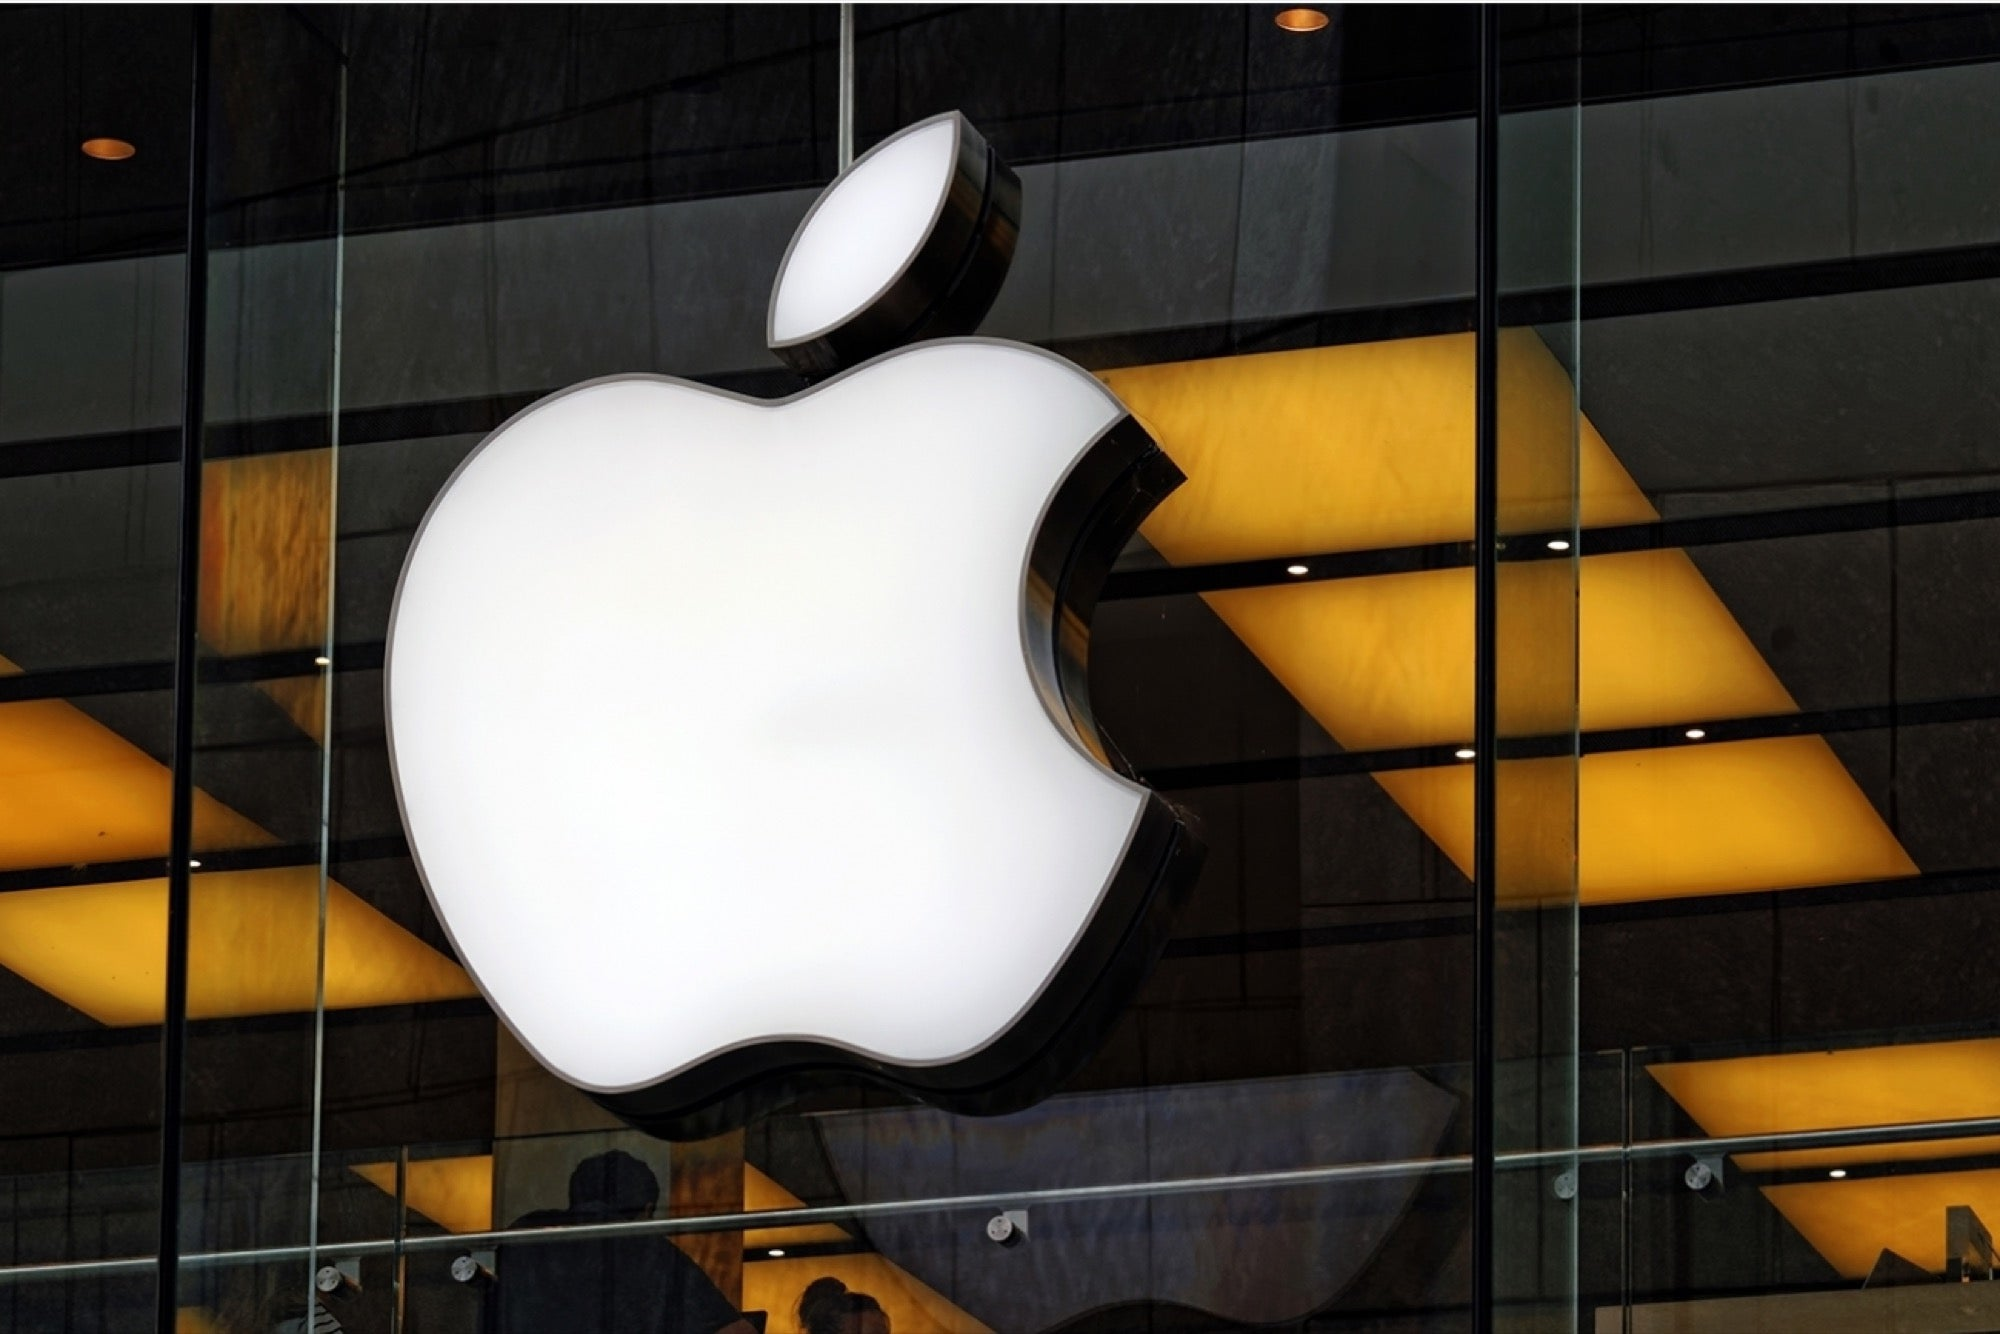 10 Things You Need To Learn From Apples Marketing